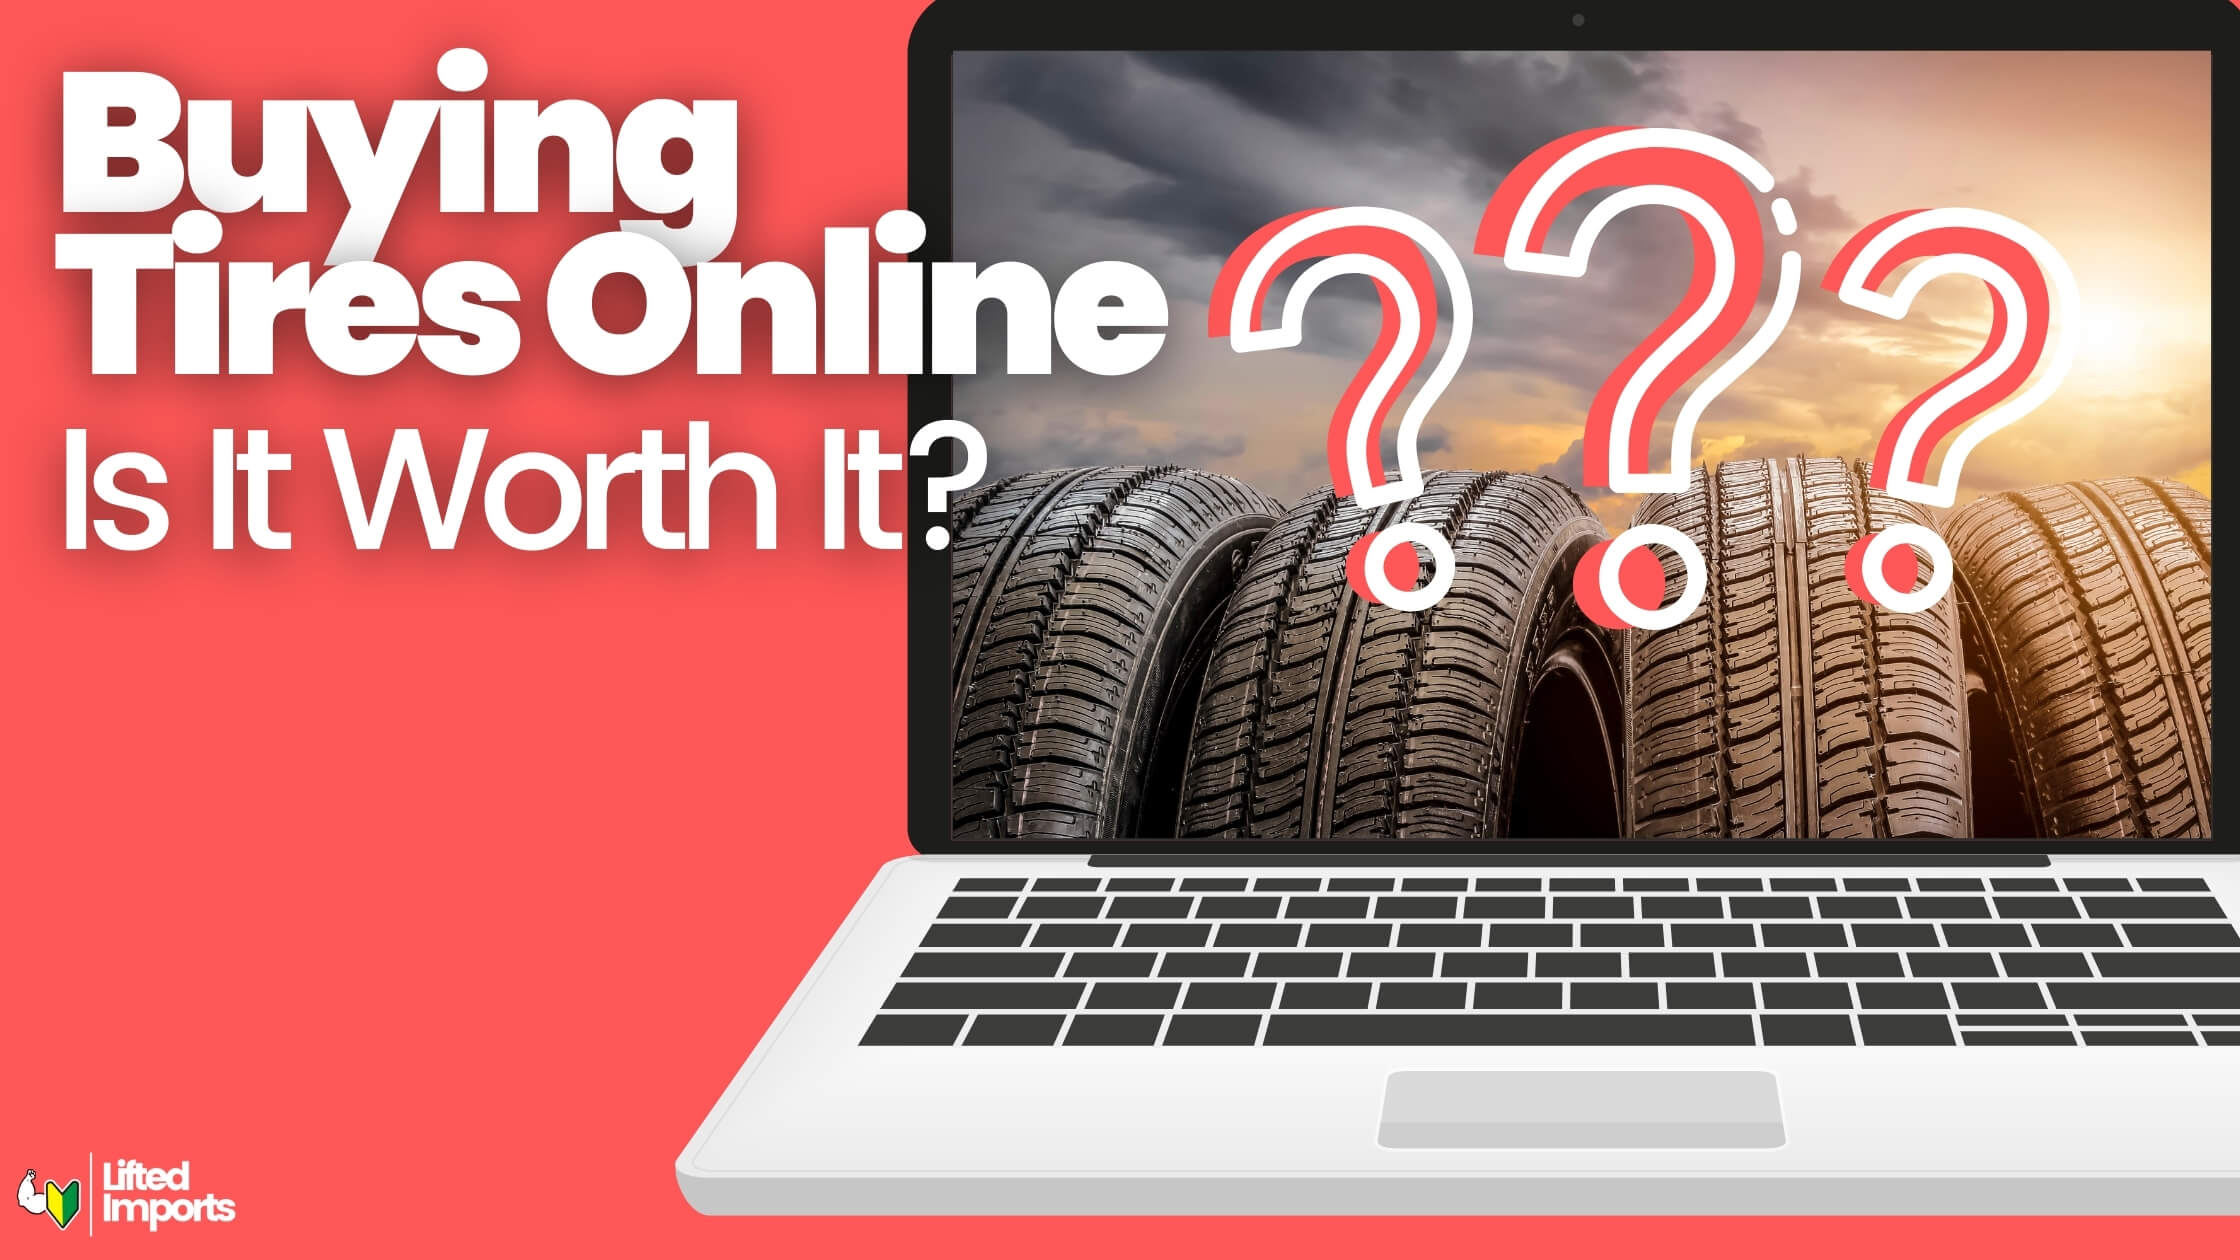 Buying Tires Online Is It Worth It (1)